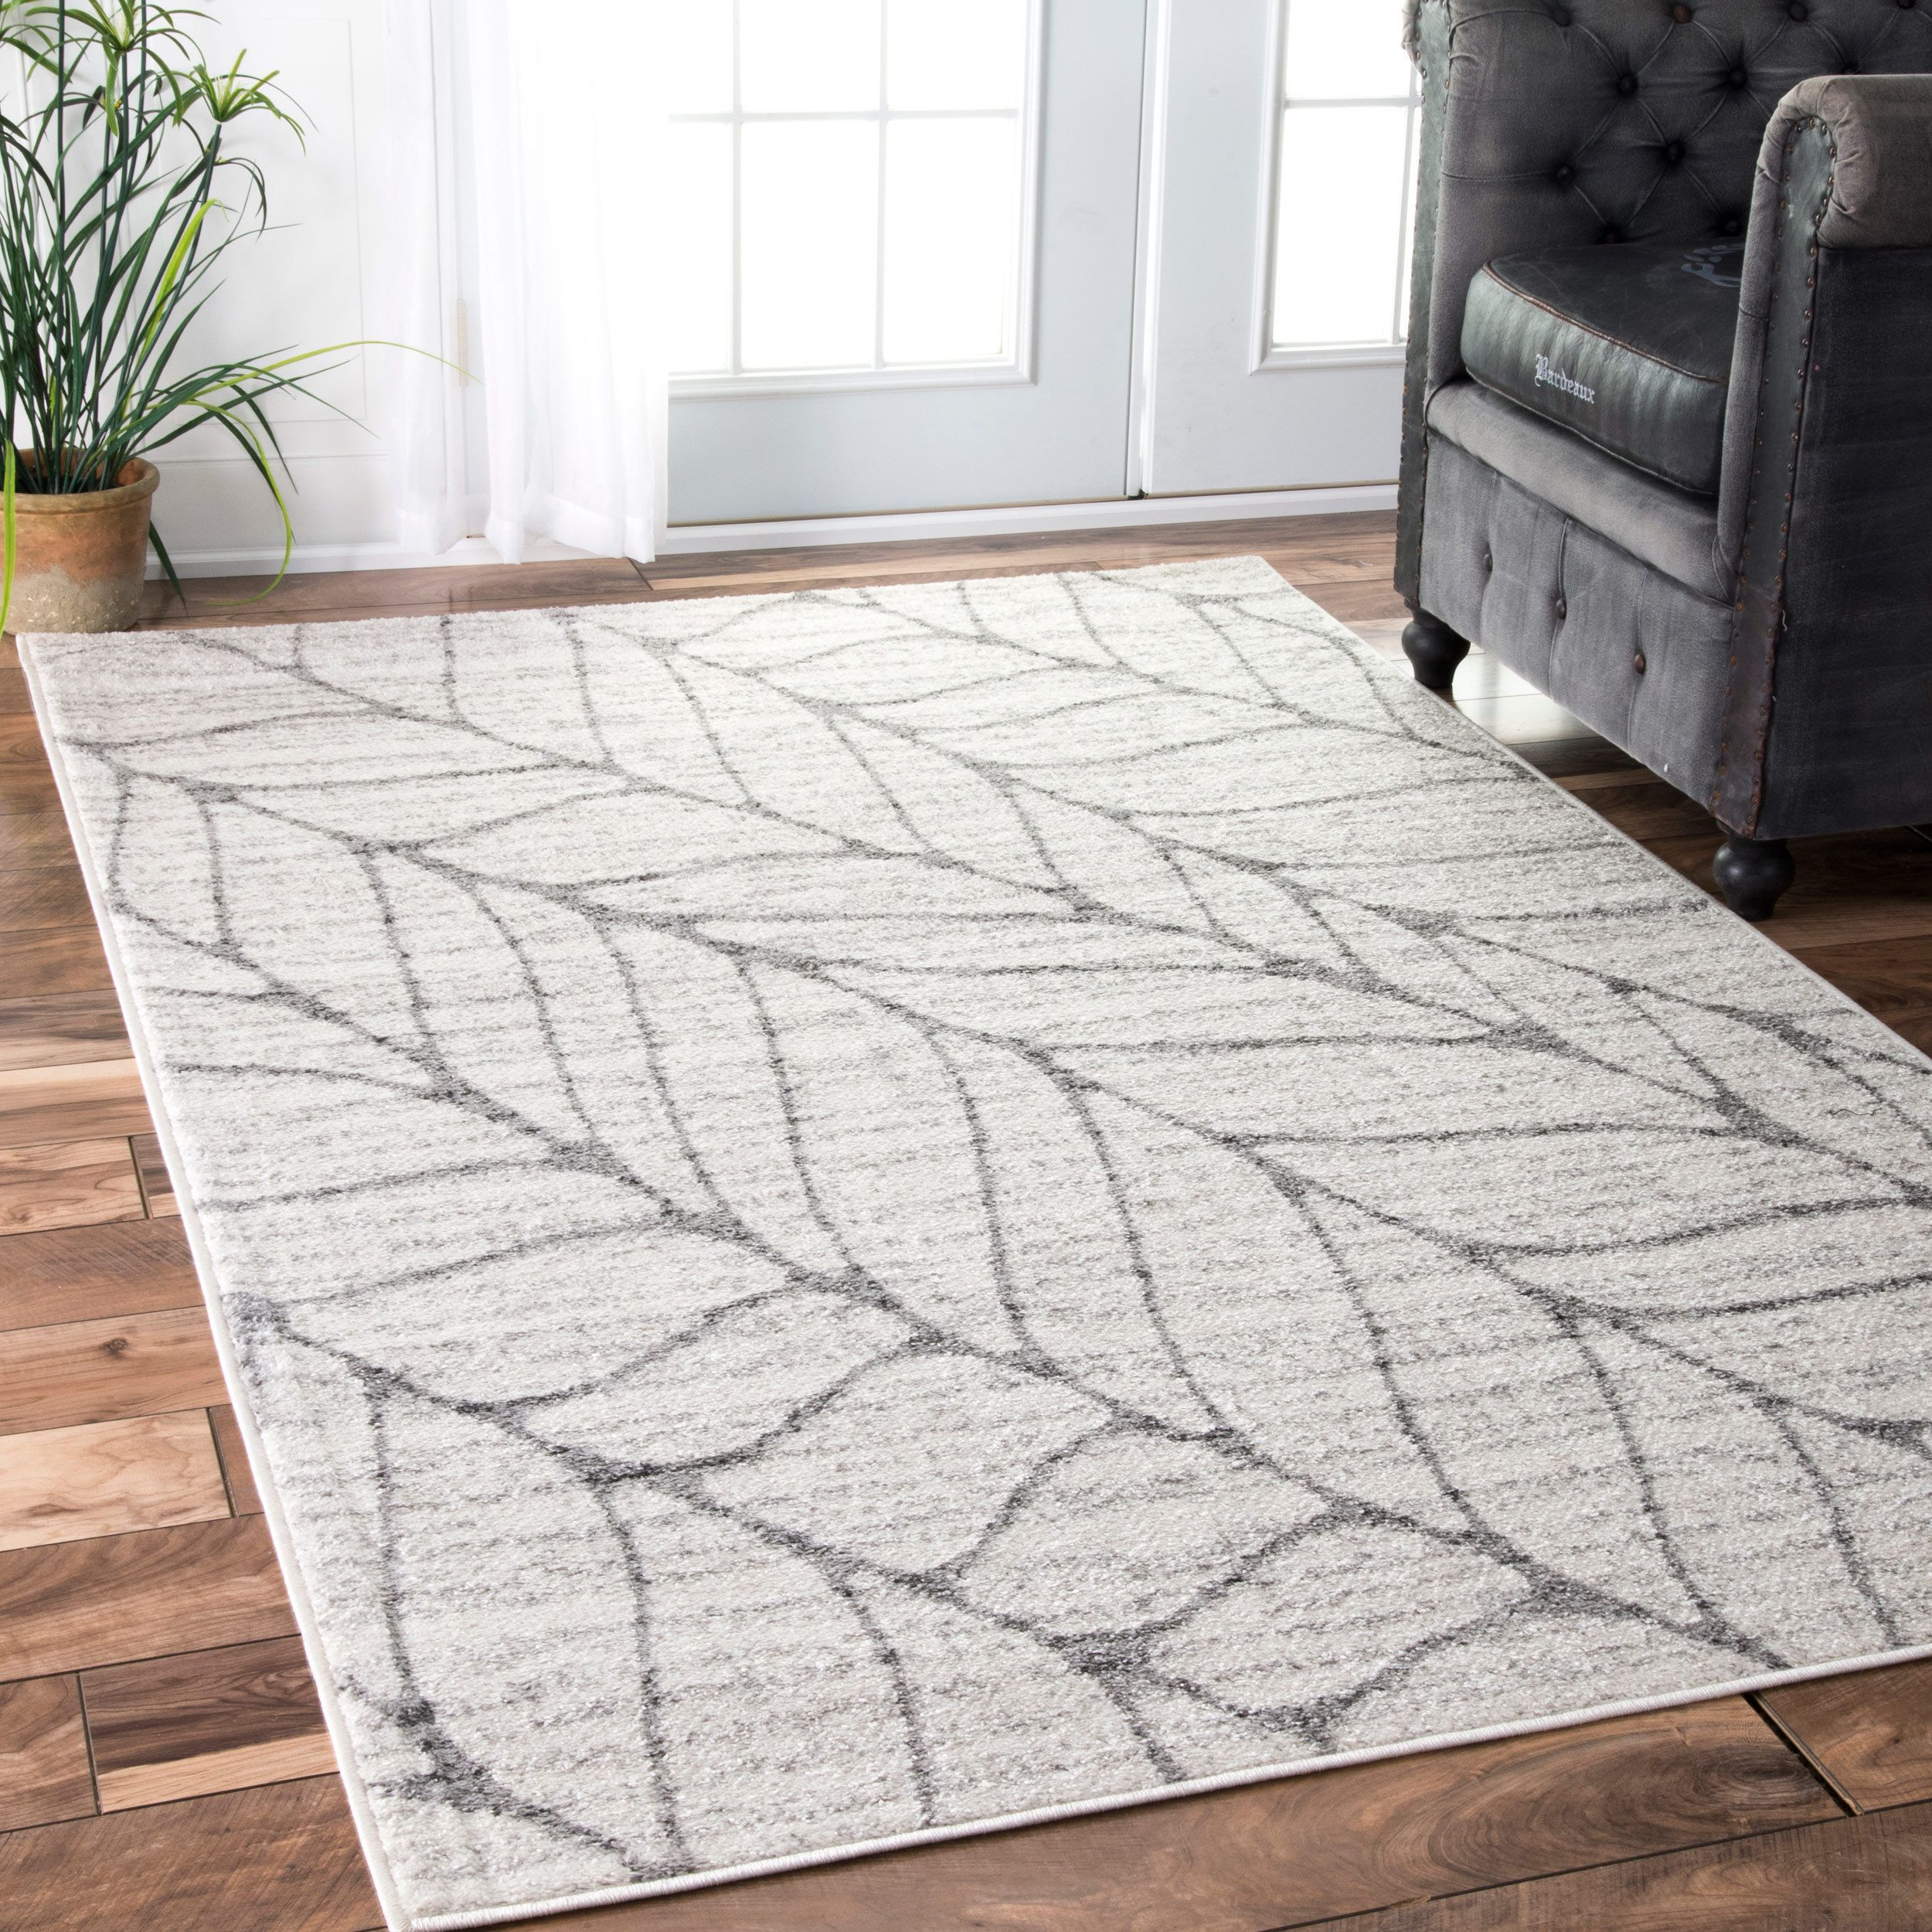 Overstock Com Online Shopping Bedding Furniture Electronics Jewelry Clothing More In 2021 Light Grey Area Rug Grey Rugs Grey Area Rug Ms living room rugs